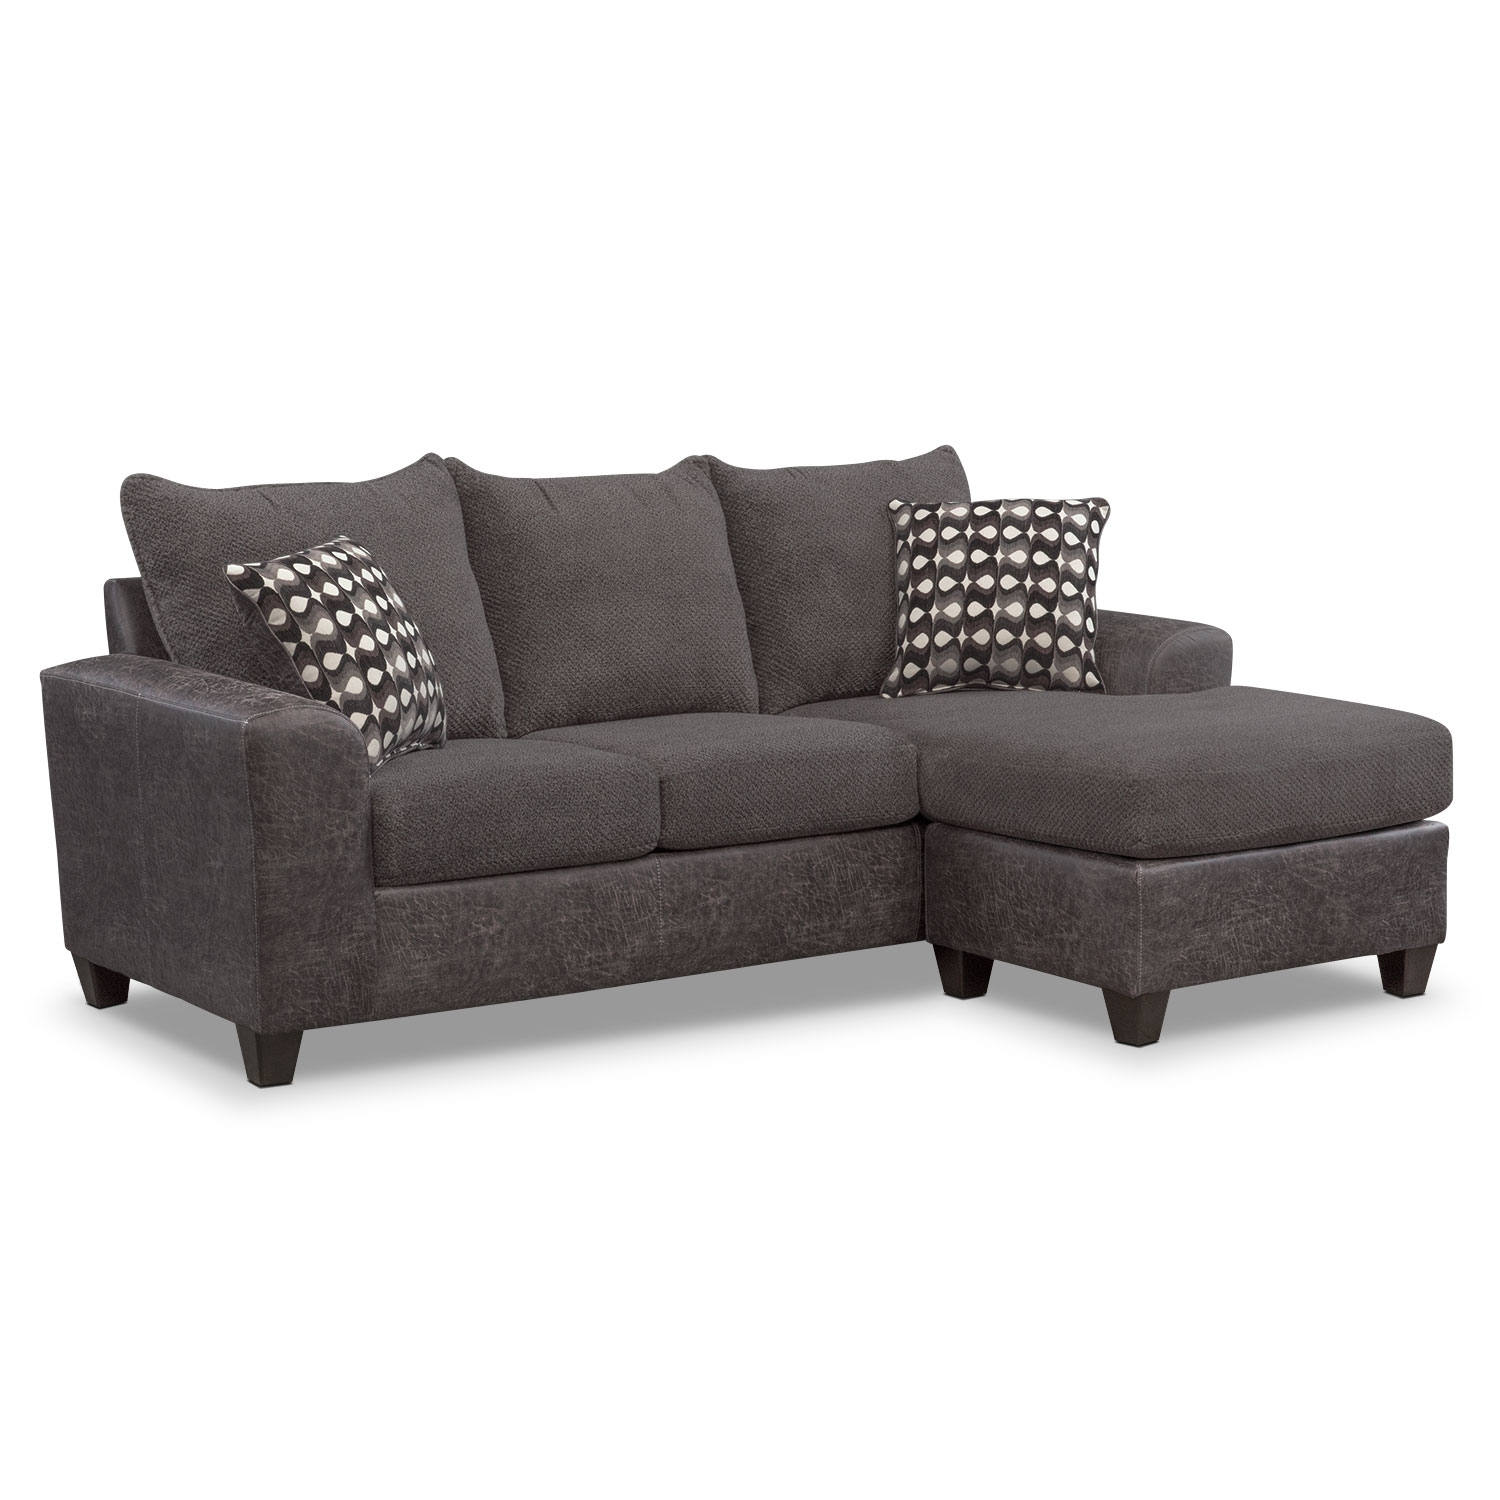 Sofas & Couches | Living Room Seating | Value City Furniture Intended For Marcus Grey 6 Piece Sectionals With  Power Headrest & Usb (Image 24 of 25)